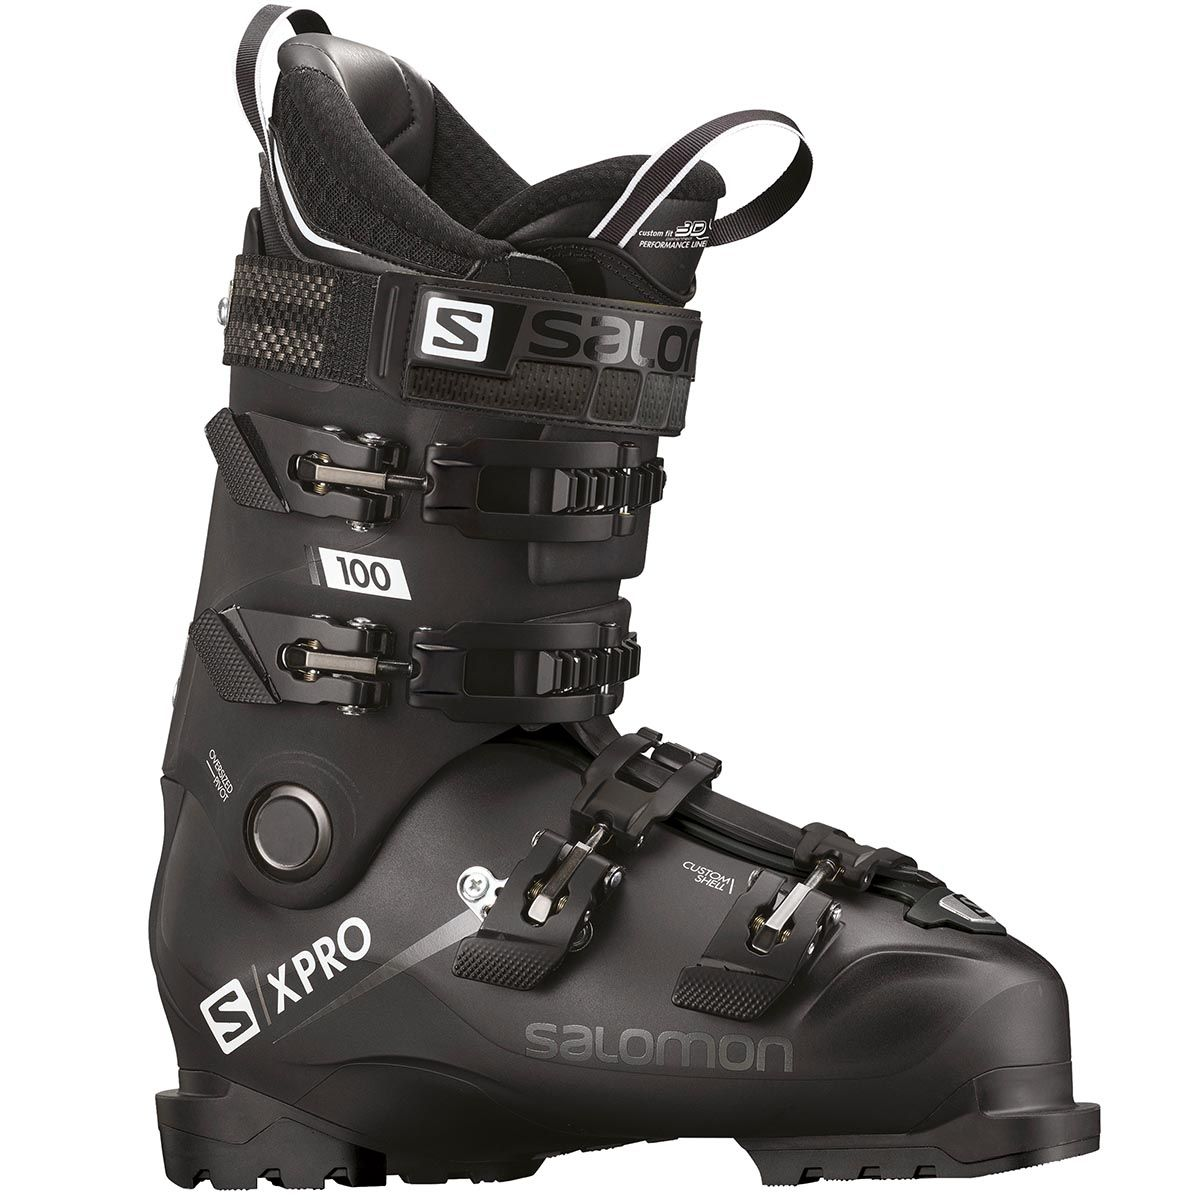 Salomon S X Pro 100 Ski Boot Is On Of The Most Popular Models On The Market Because They Are An Ideal Choice For A Wide Range O Ski Boots Boots Snowboard Boots